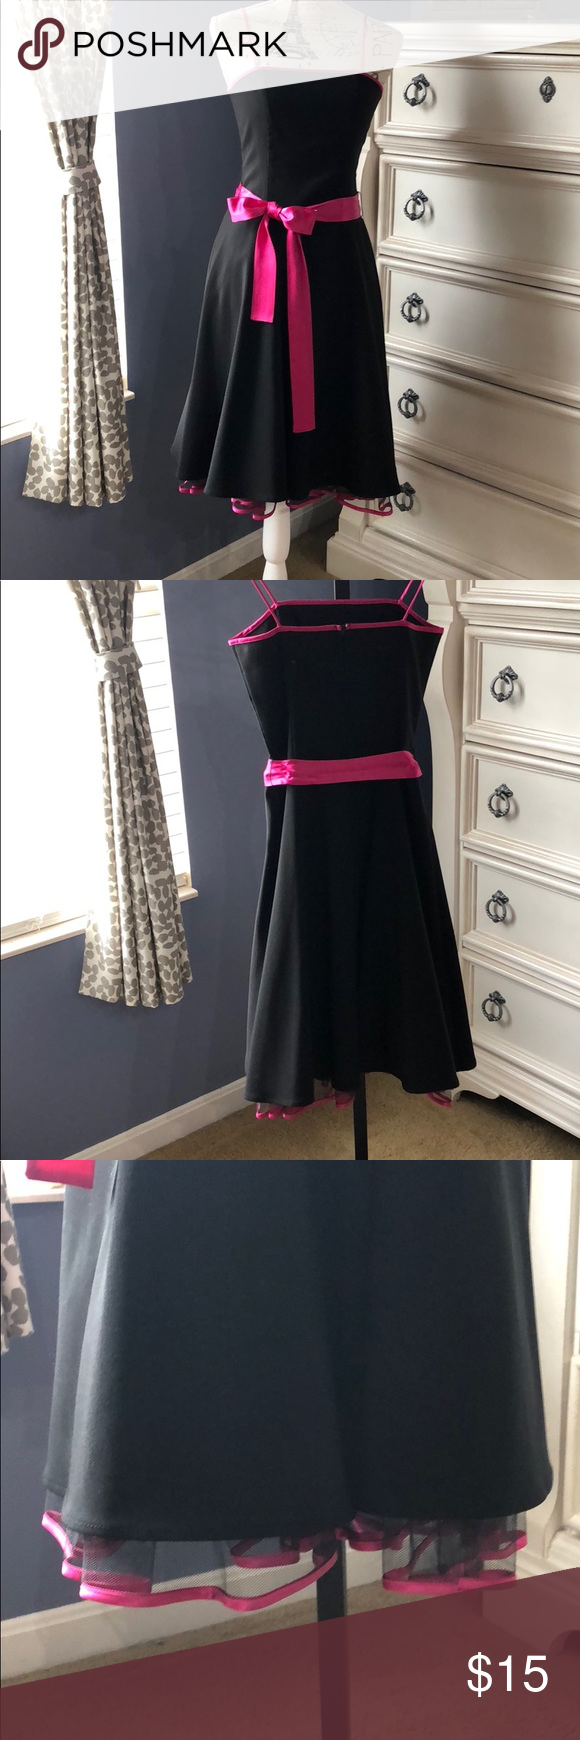 Adorable Black And Pink Dress Black Mid Length Dress With Hot Pink Trim And Satin Belt Netting Under S Black And Pink Dress Outfit Inspiration Fall Dresses [ 1740 x 580 Pixel ]